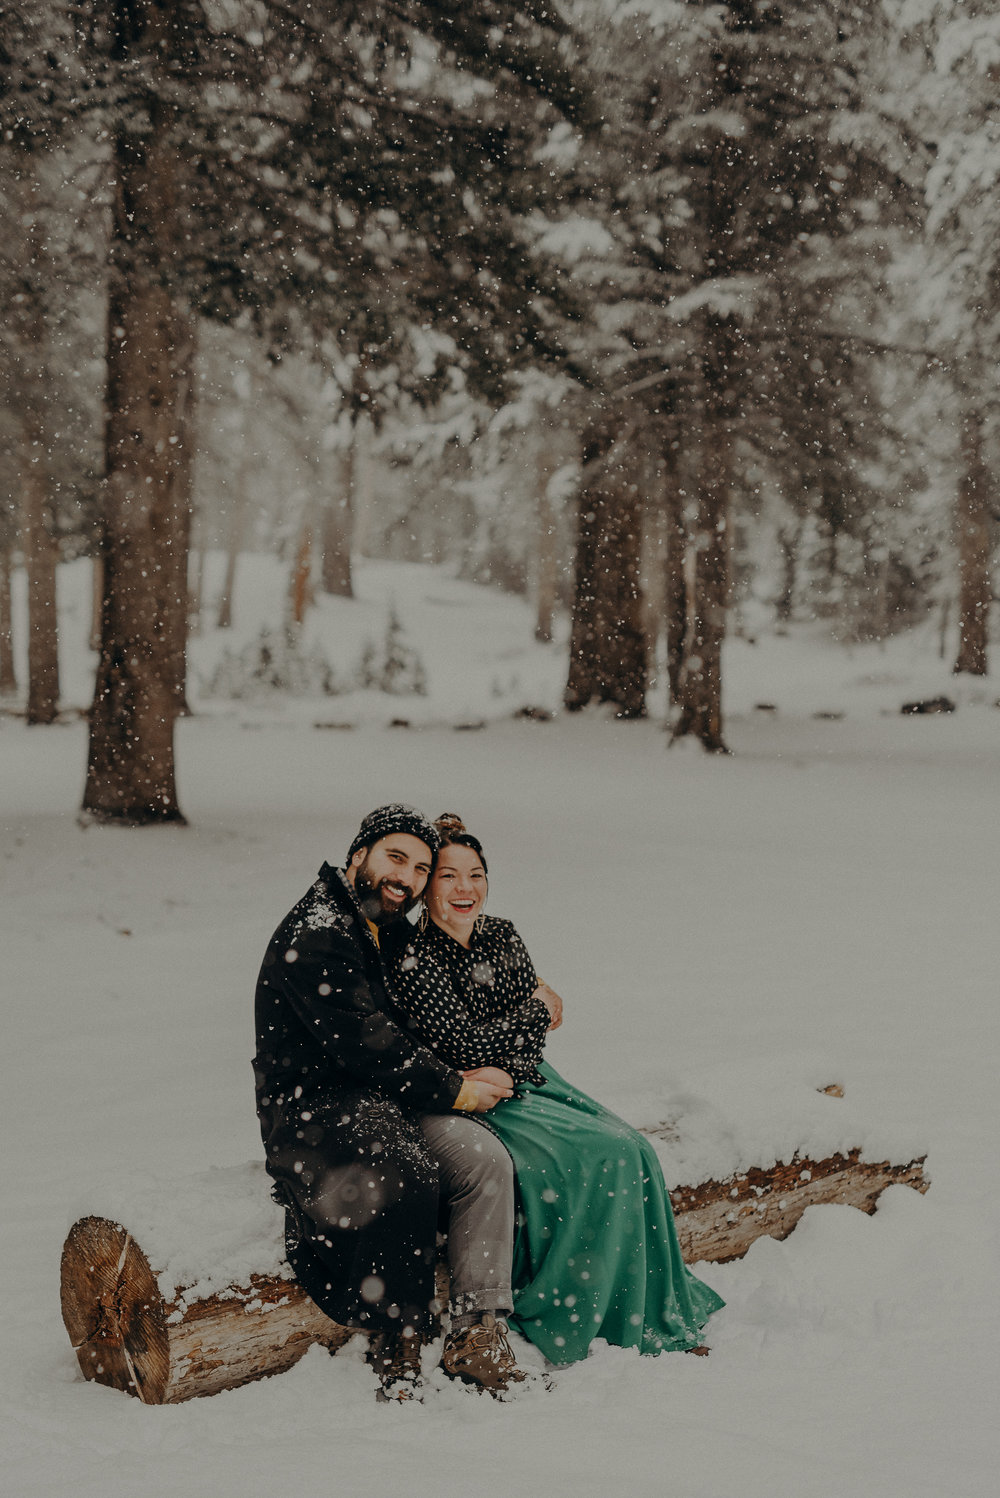 ©Isaiah + Taylor Photography - Los Angeles Wedding Photographer - Snowing engagement session-022.jpg